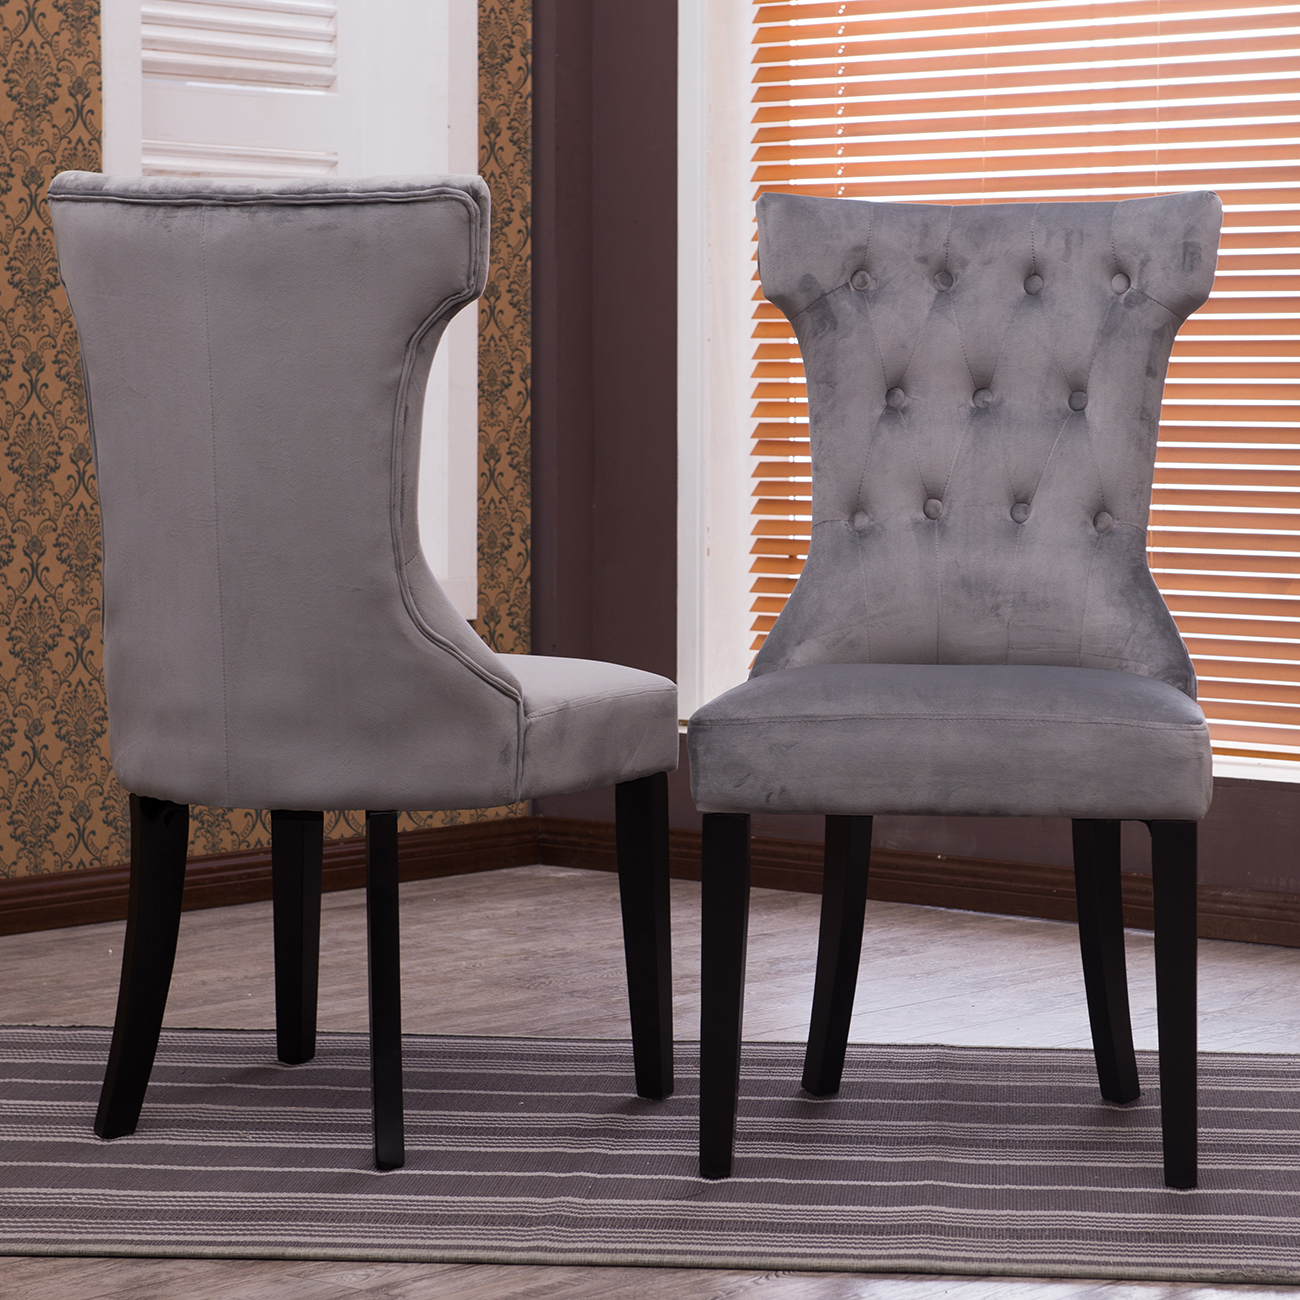 Upholstery For Dining Room Chairs: Set Of 2 Accent Dining Chair Fabric Tufted Modern Living